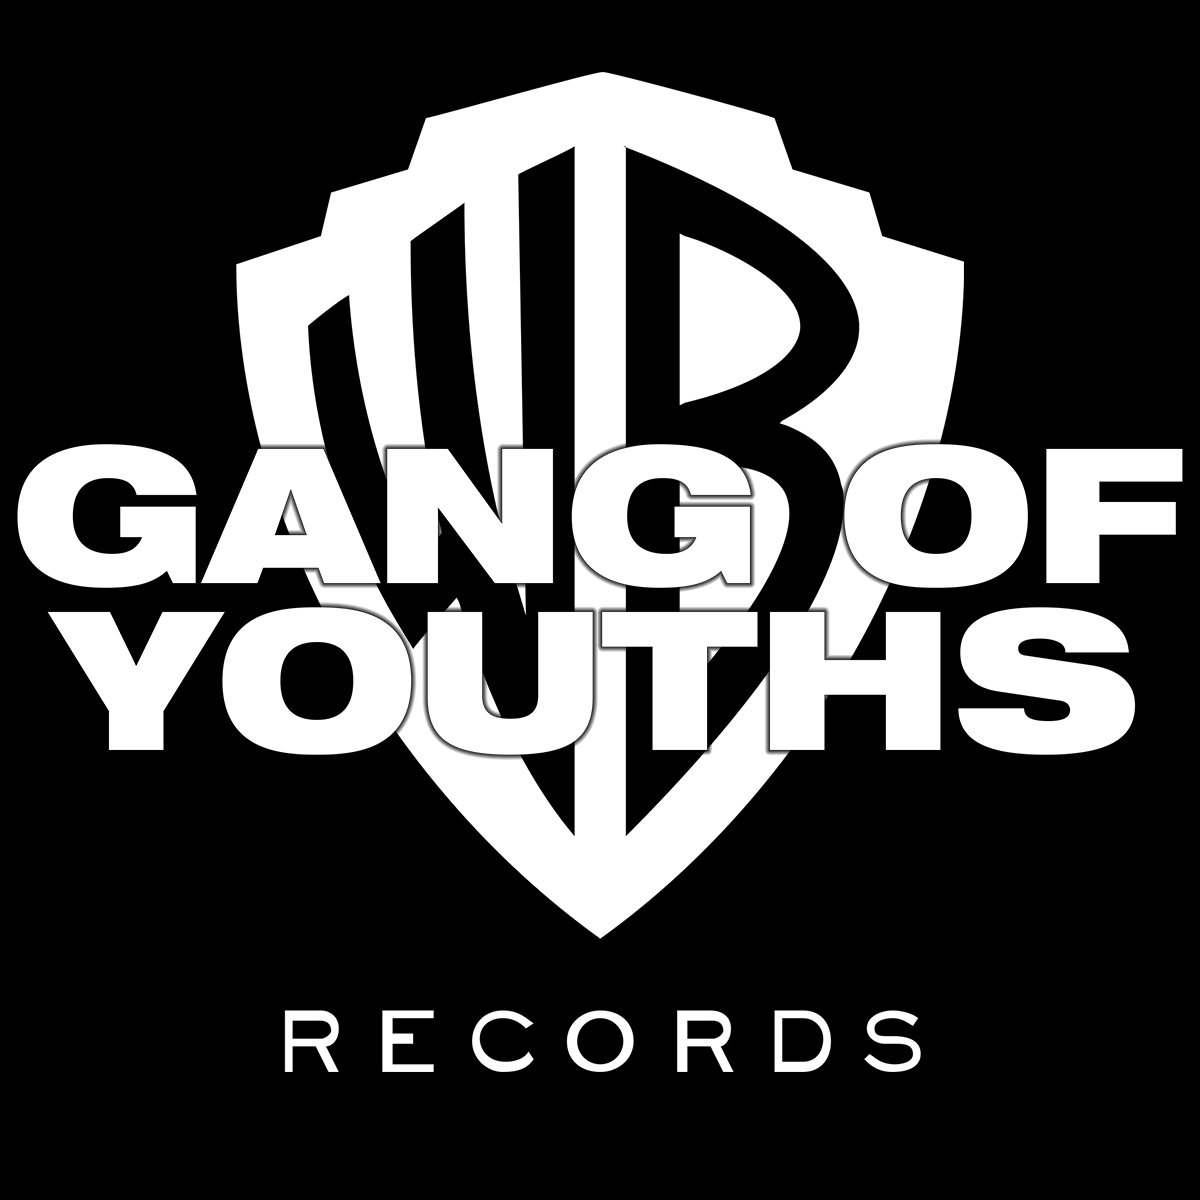 Confirmed: Gang of Youths has signed a worldwide record deal with Warner Brothers